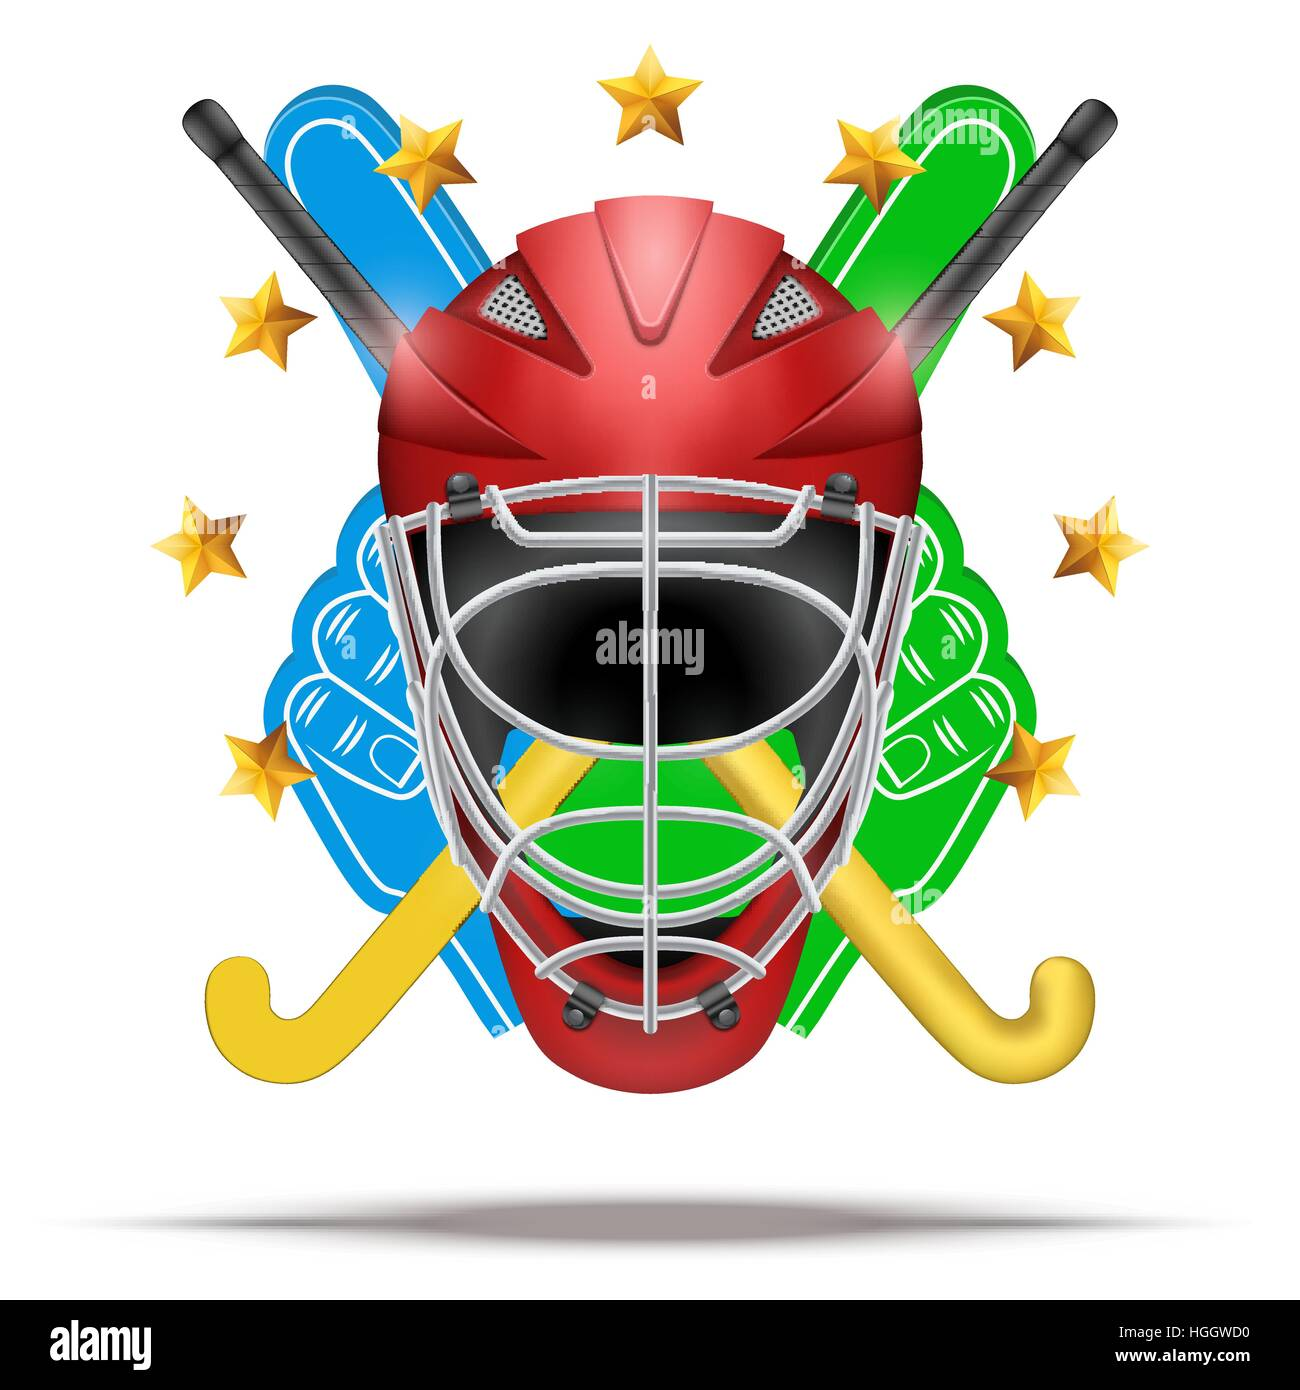 Outdoor hockey field symbol with helmet and sticks. Hockey on grass. Illustration isolated on white background. - Stock Image